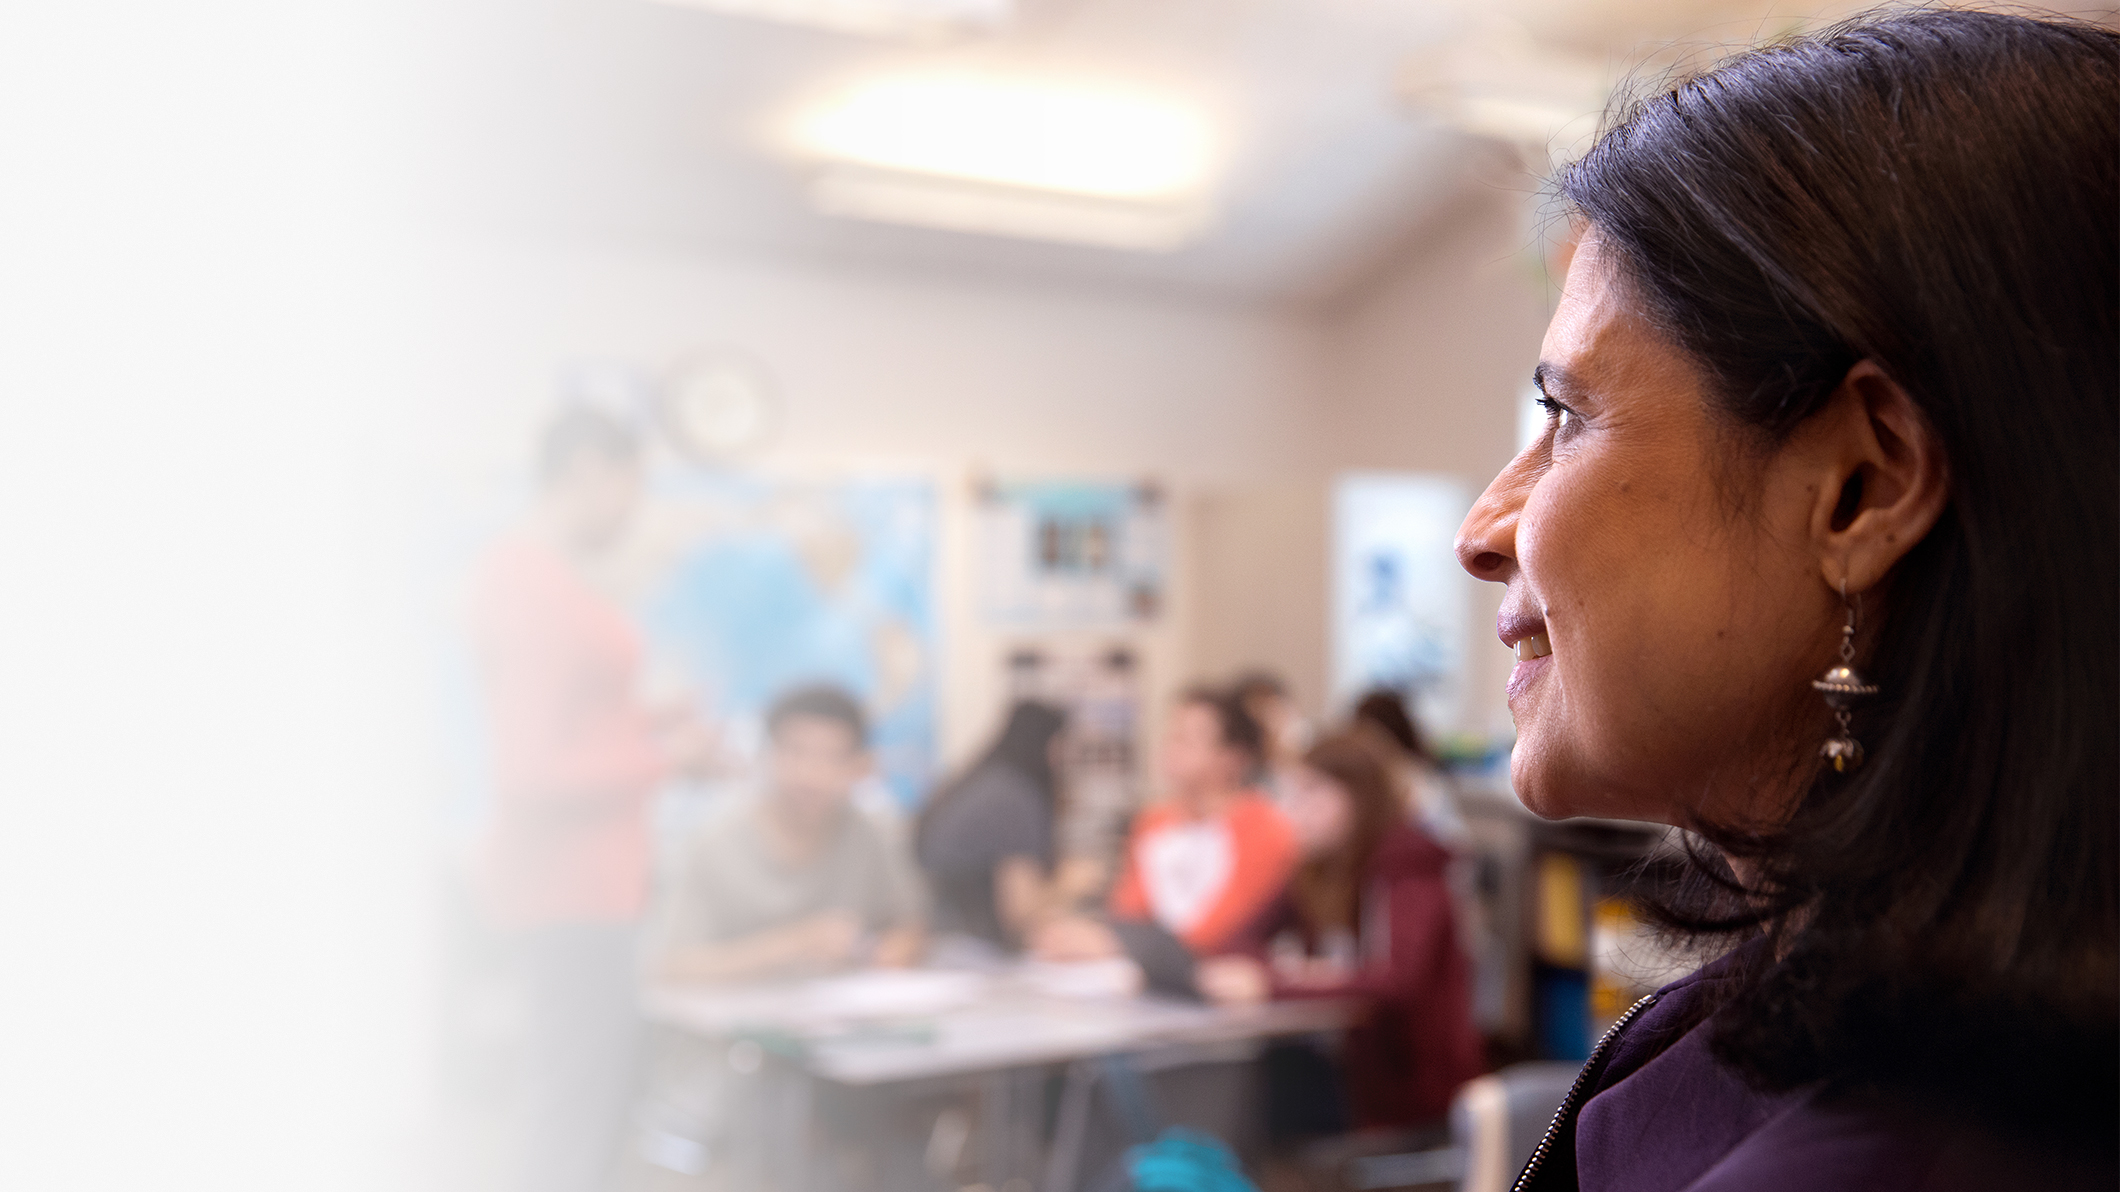 A woman looks at a classroom with teen students.